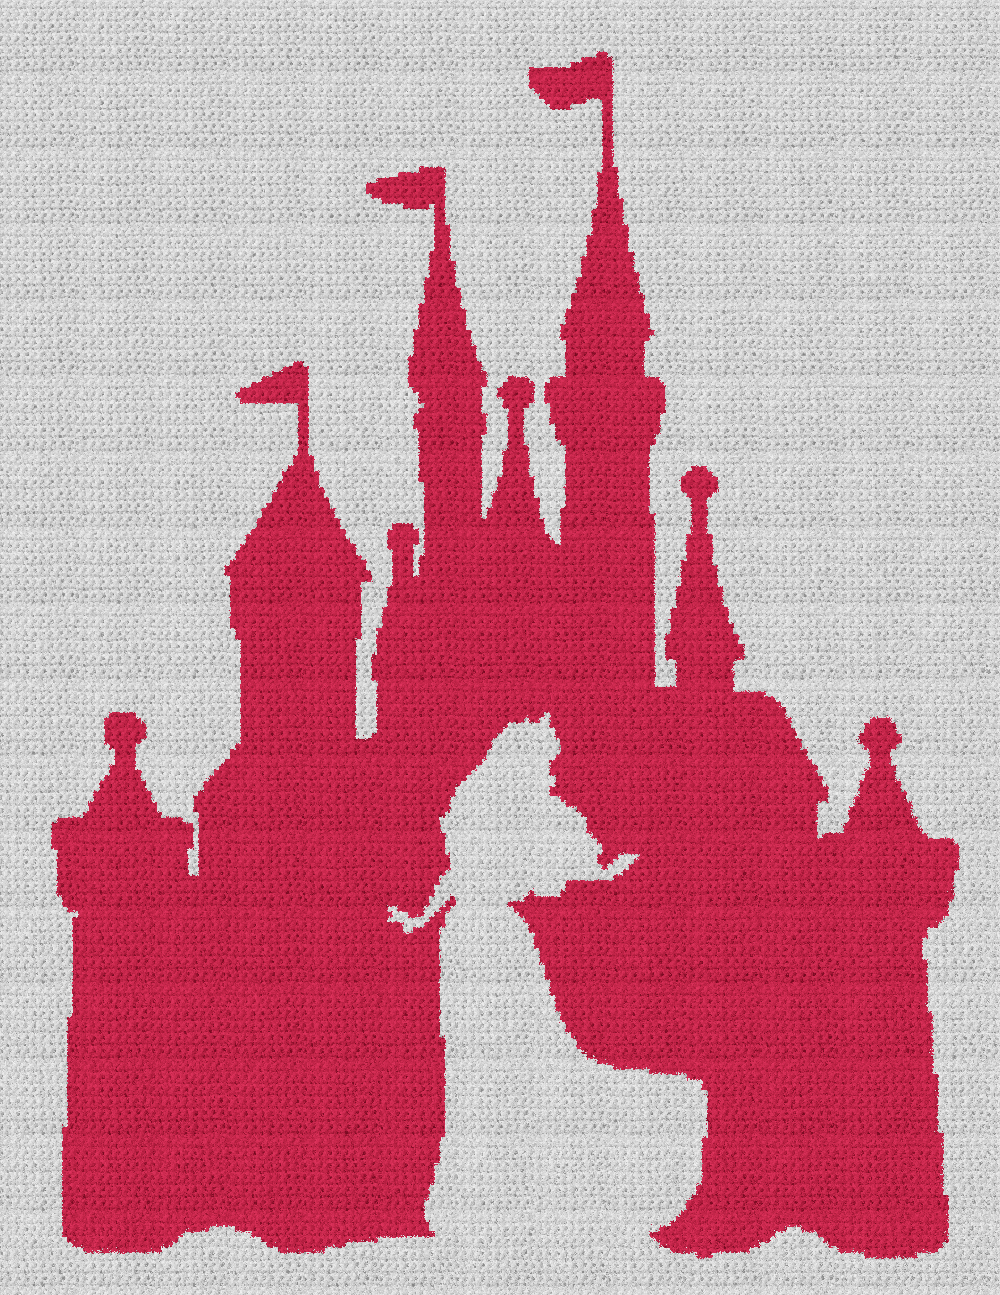 Sleeping Beauty/Aurora / Disney Castle - Single Crochet Written Graphghan Pattern - 06 (183x240)